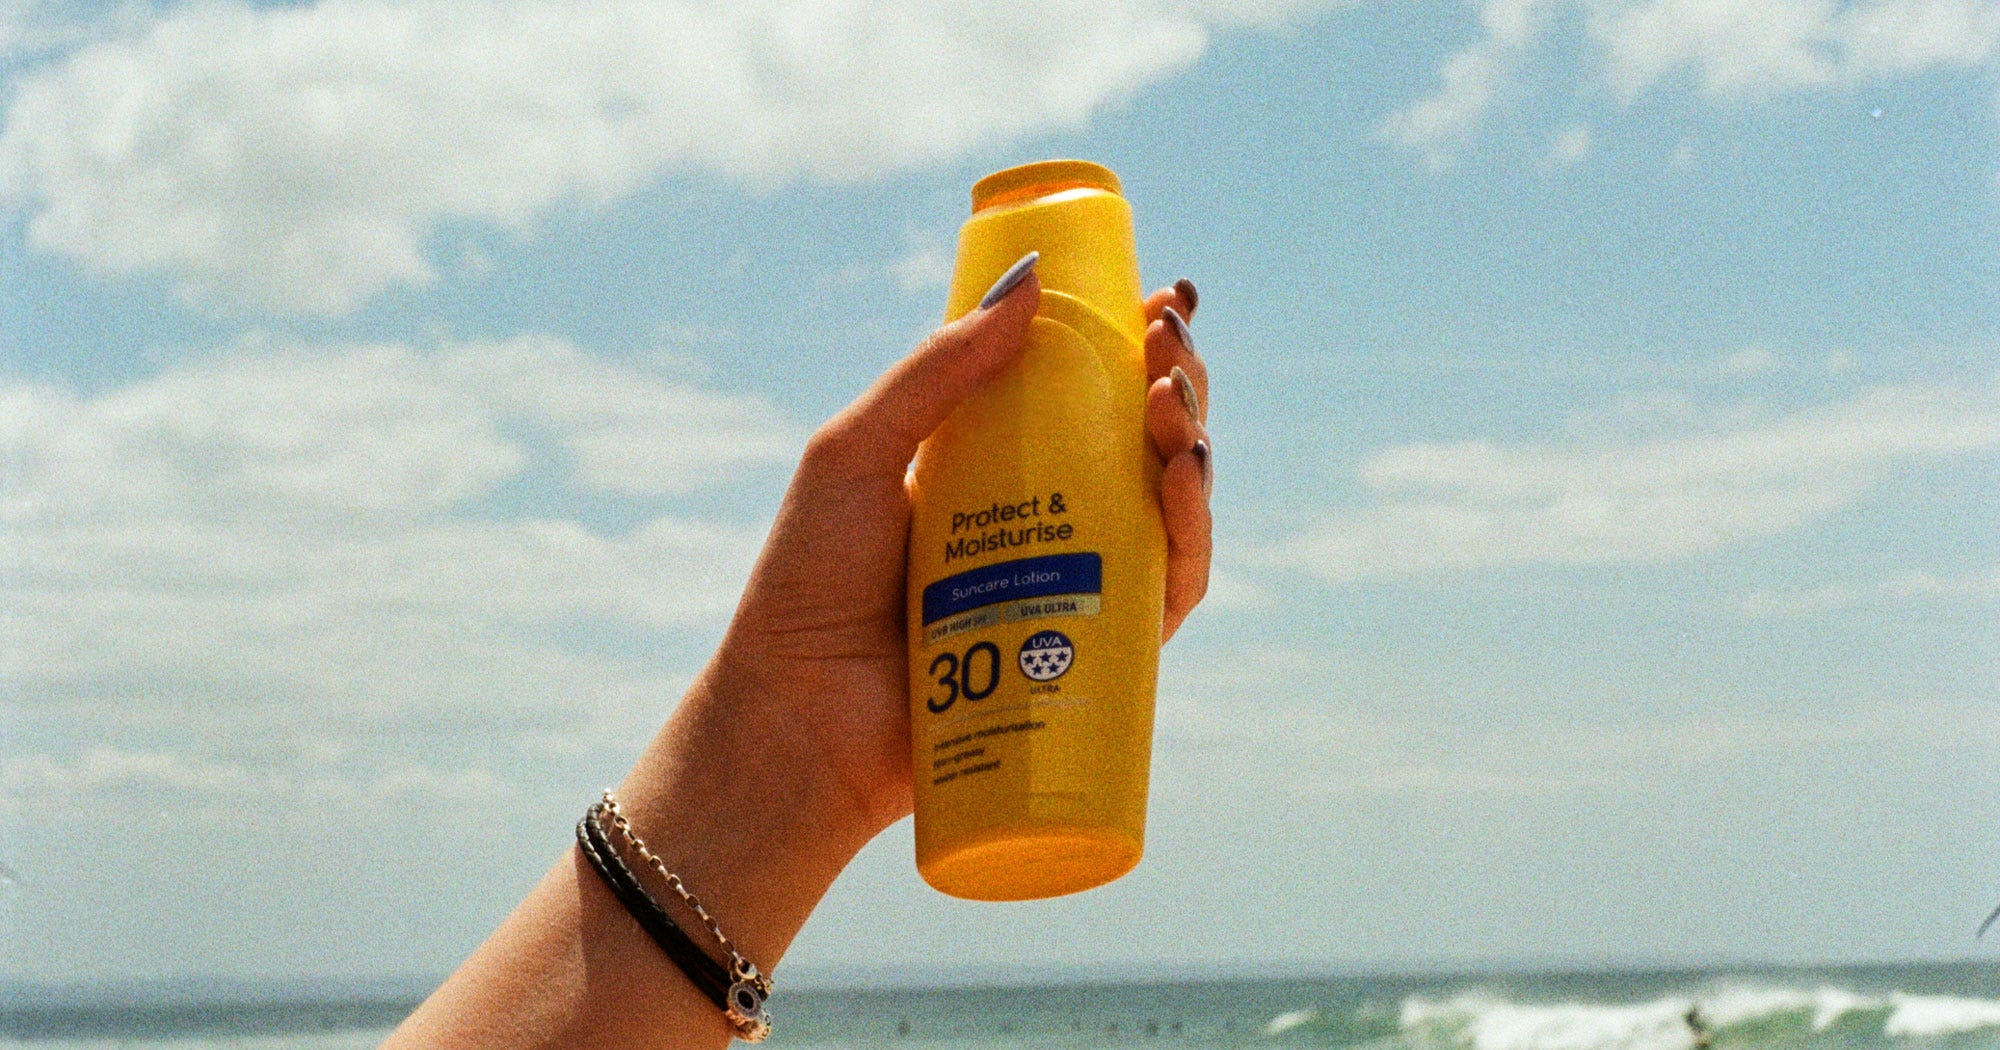 Top Dermatologists Answer All Your Questions About Sunscreen